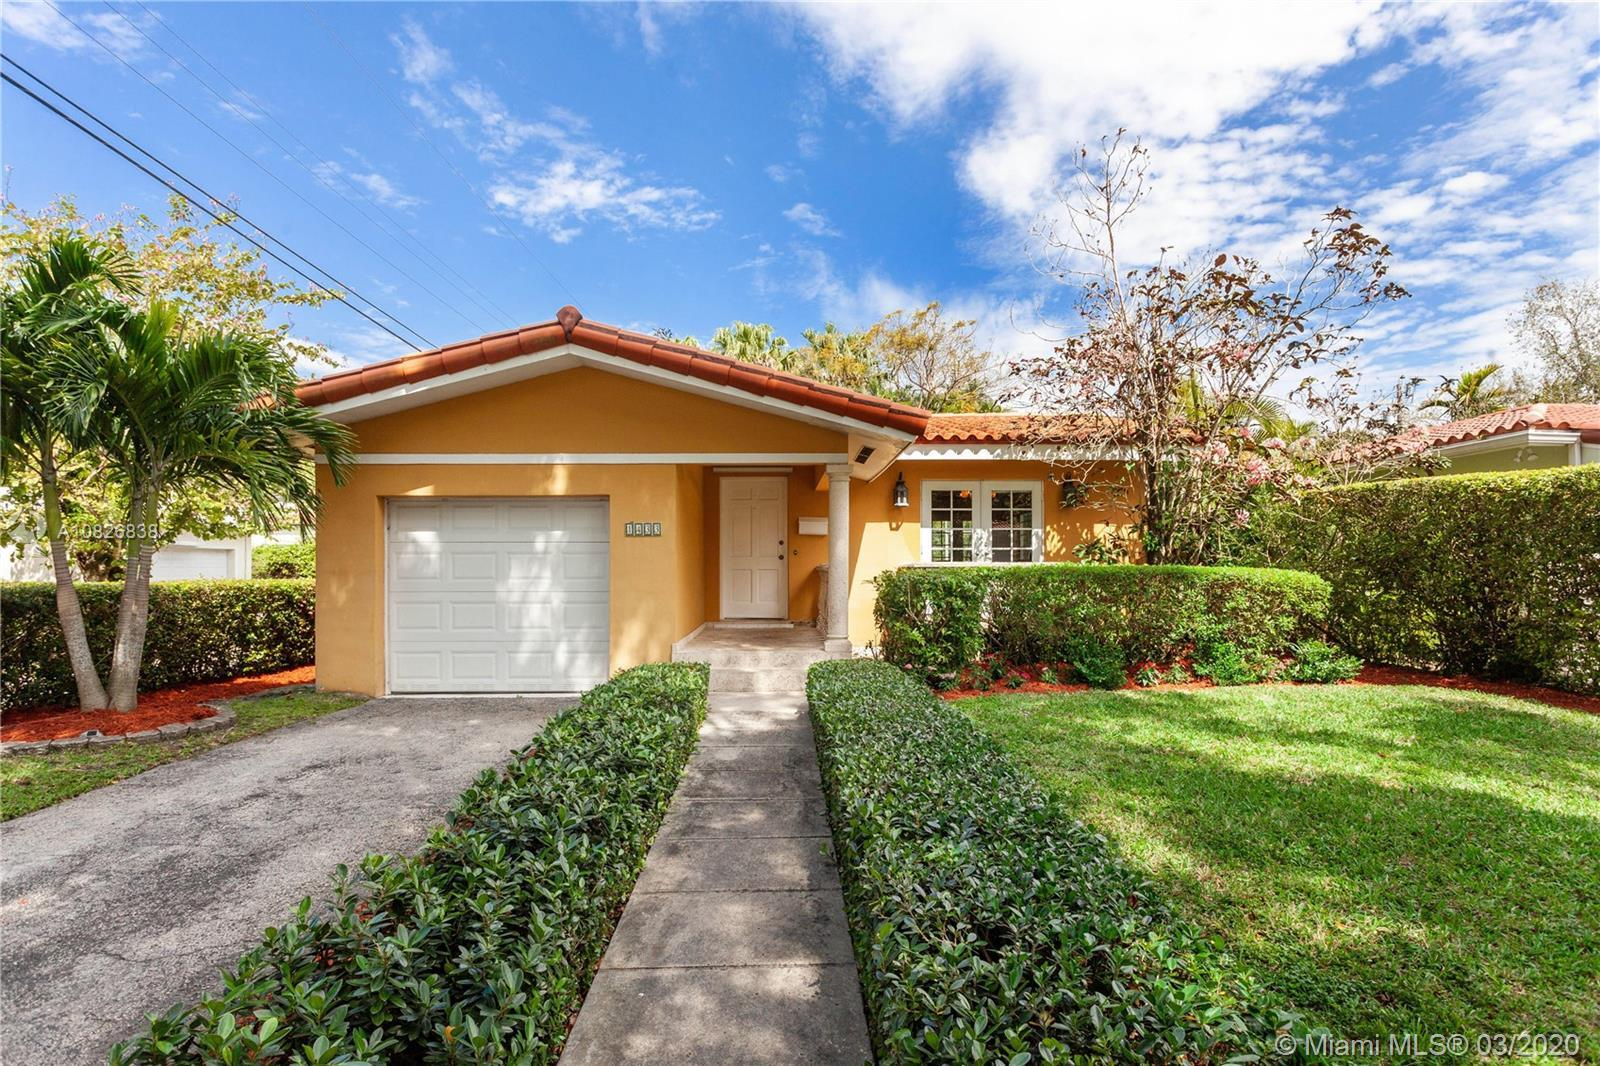 Charming 3Bed/2Bath home on a peaceful, tree-lined street.  Updates include impact glass, garage imp